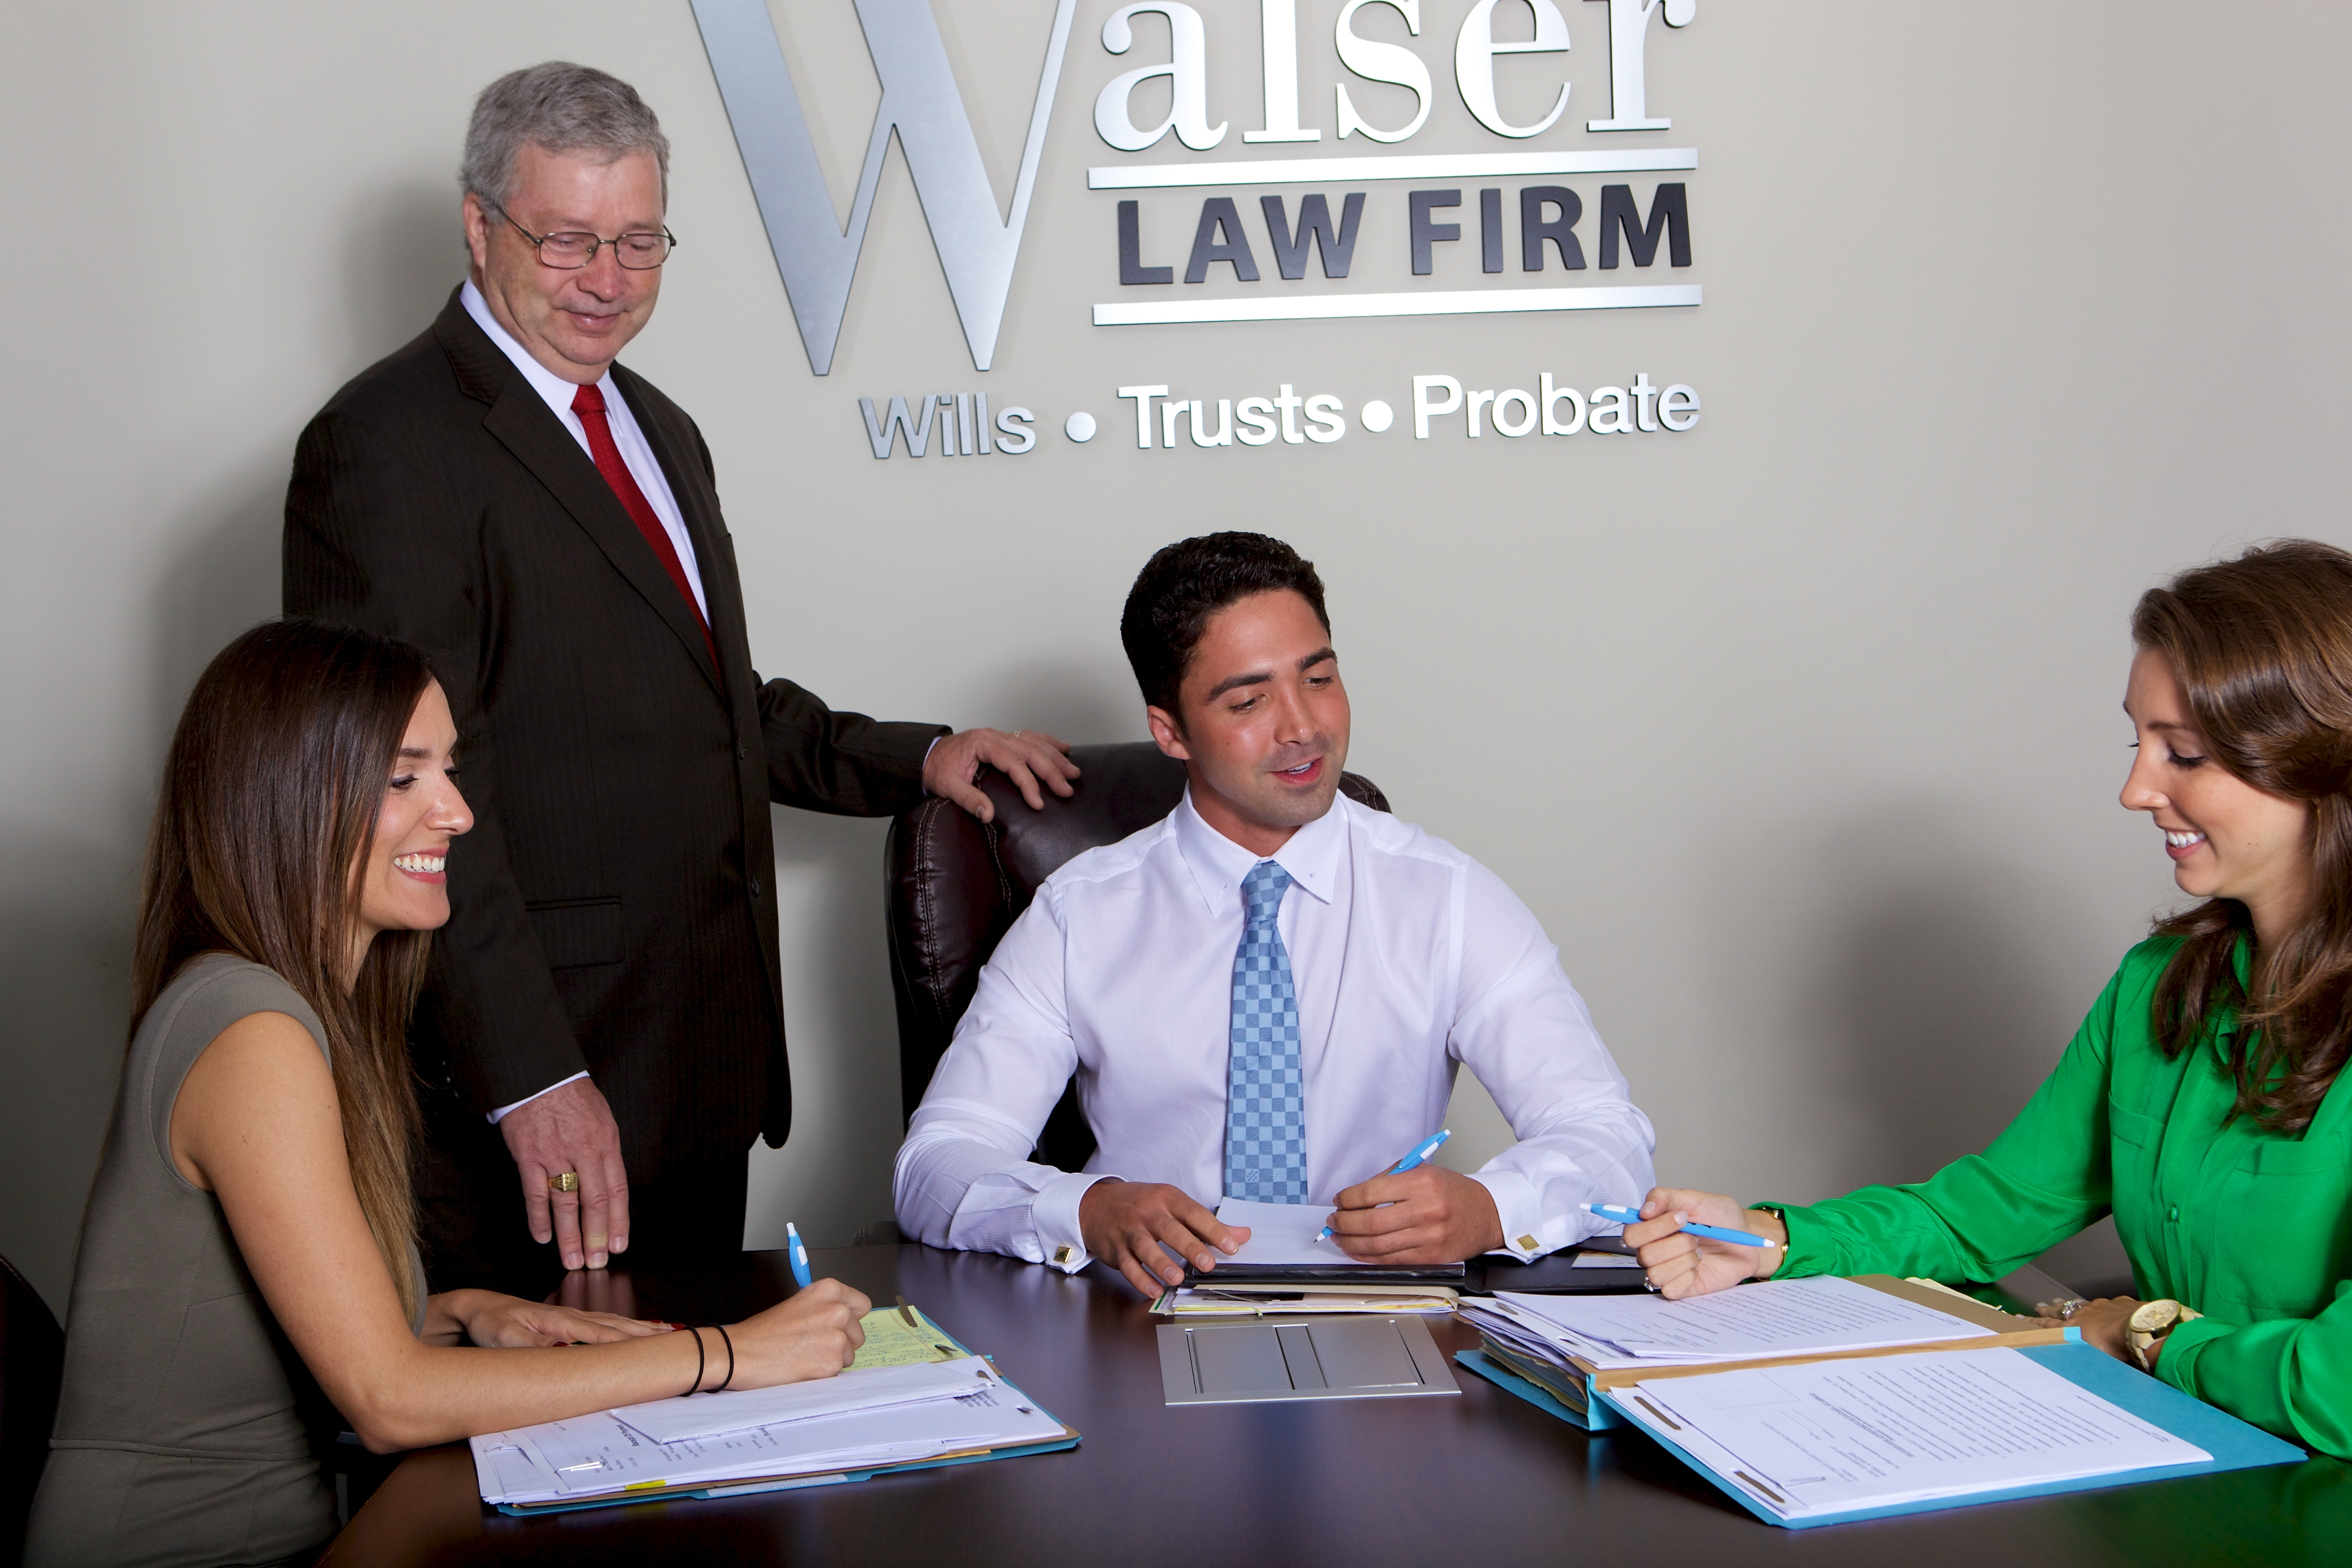 Walser Law Firm image 1